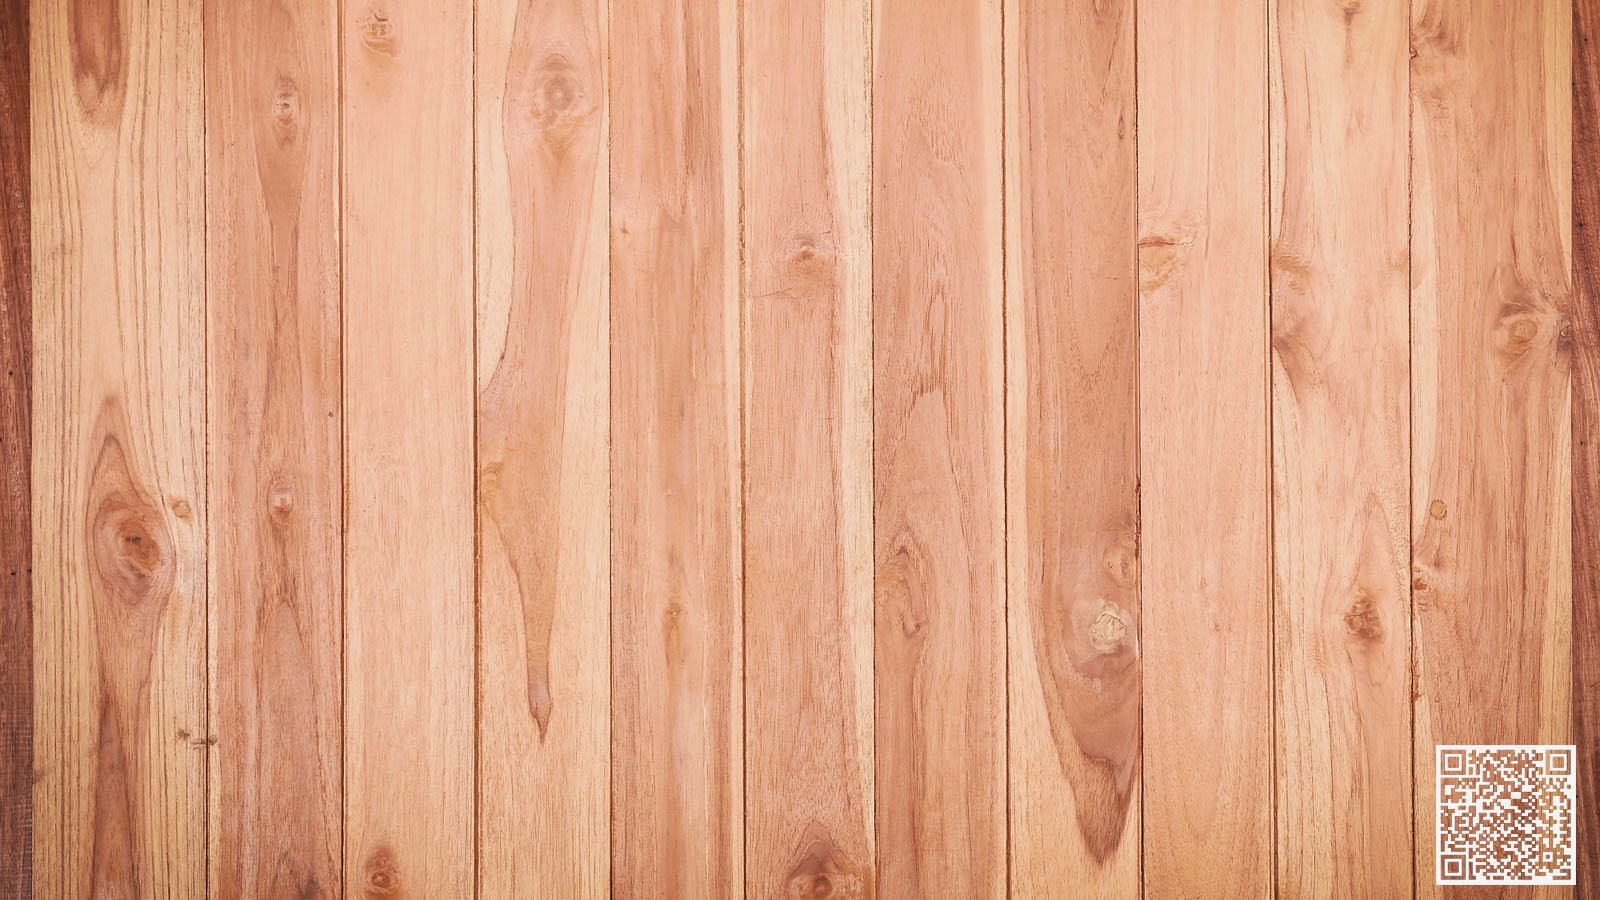 Hd wood wallpapersbackgrounds for free download 1600x900 voltagebd Choice Image